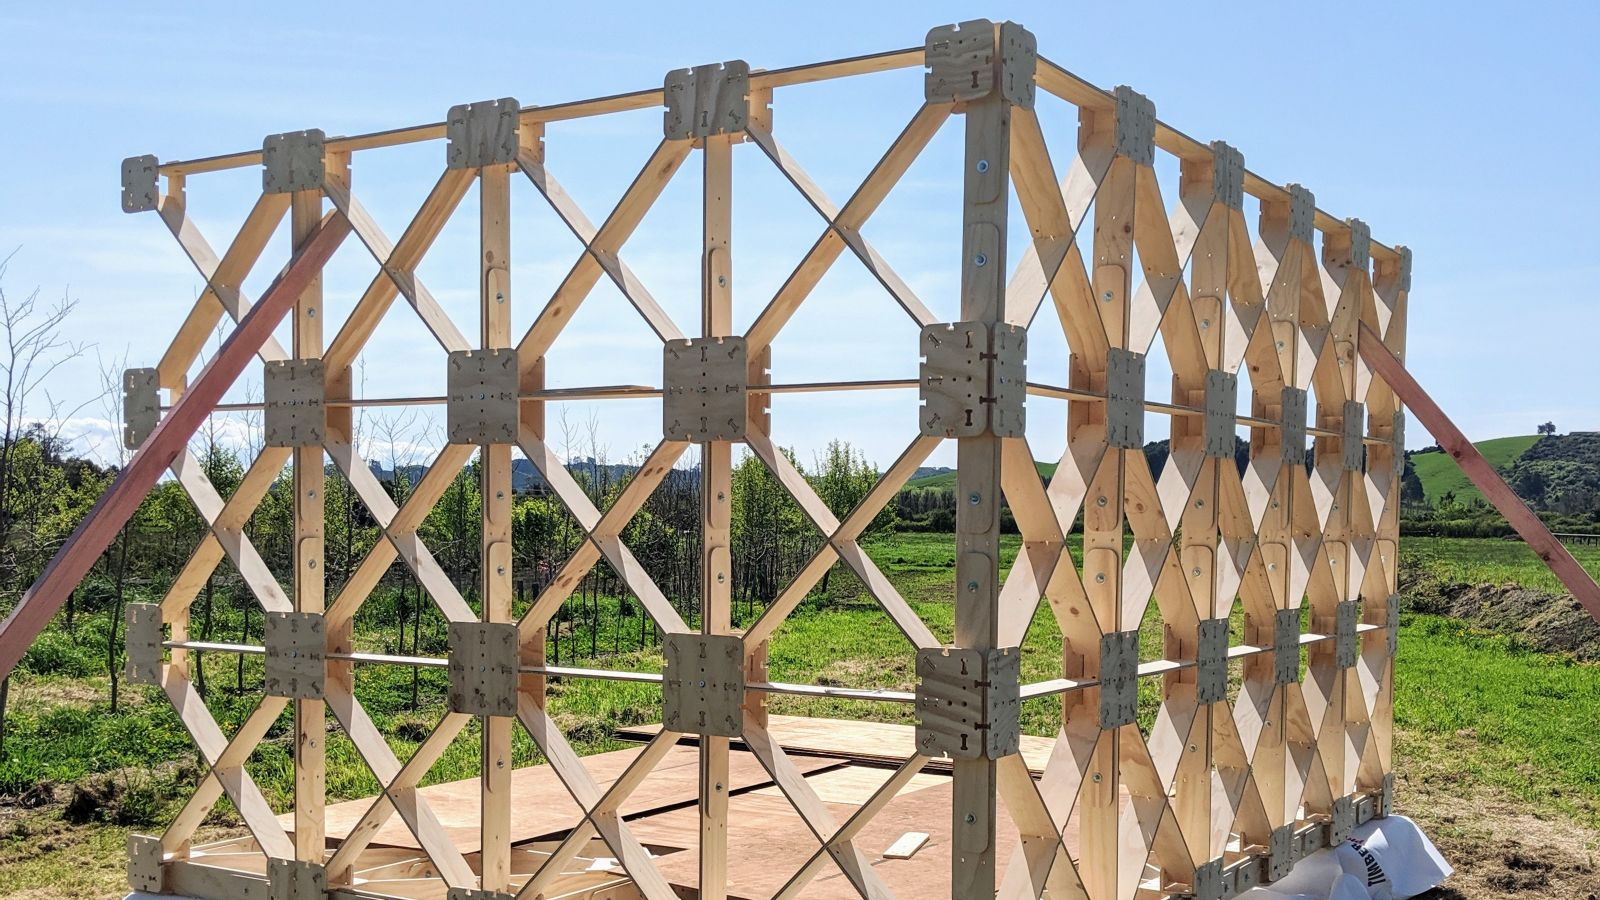 Ged Finch's xframe prototype being constructed. Two wooden panels of x shaped wood constructed in field